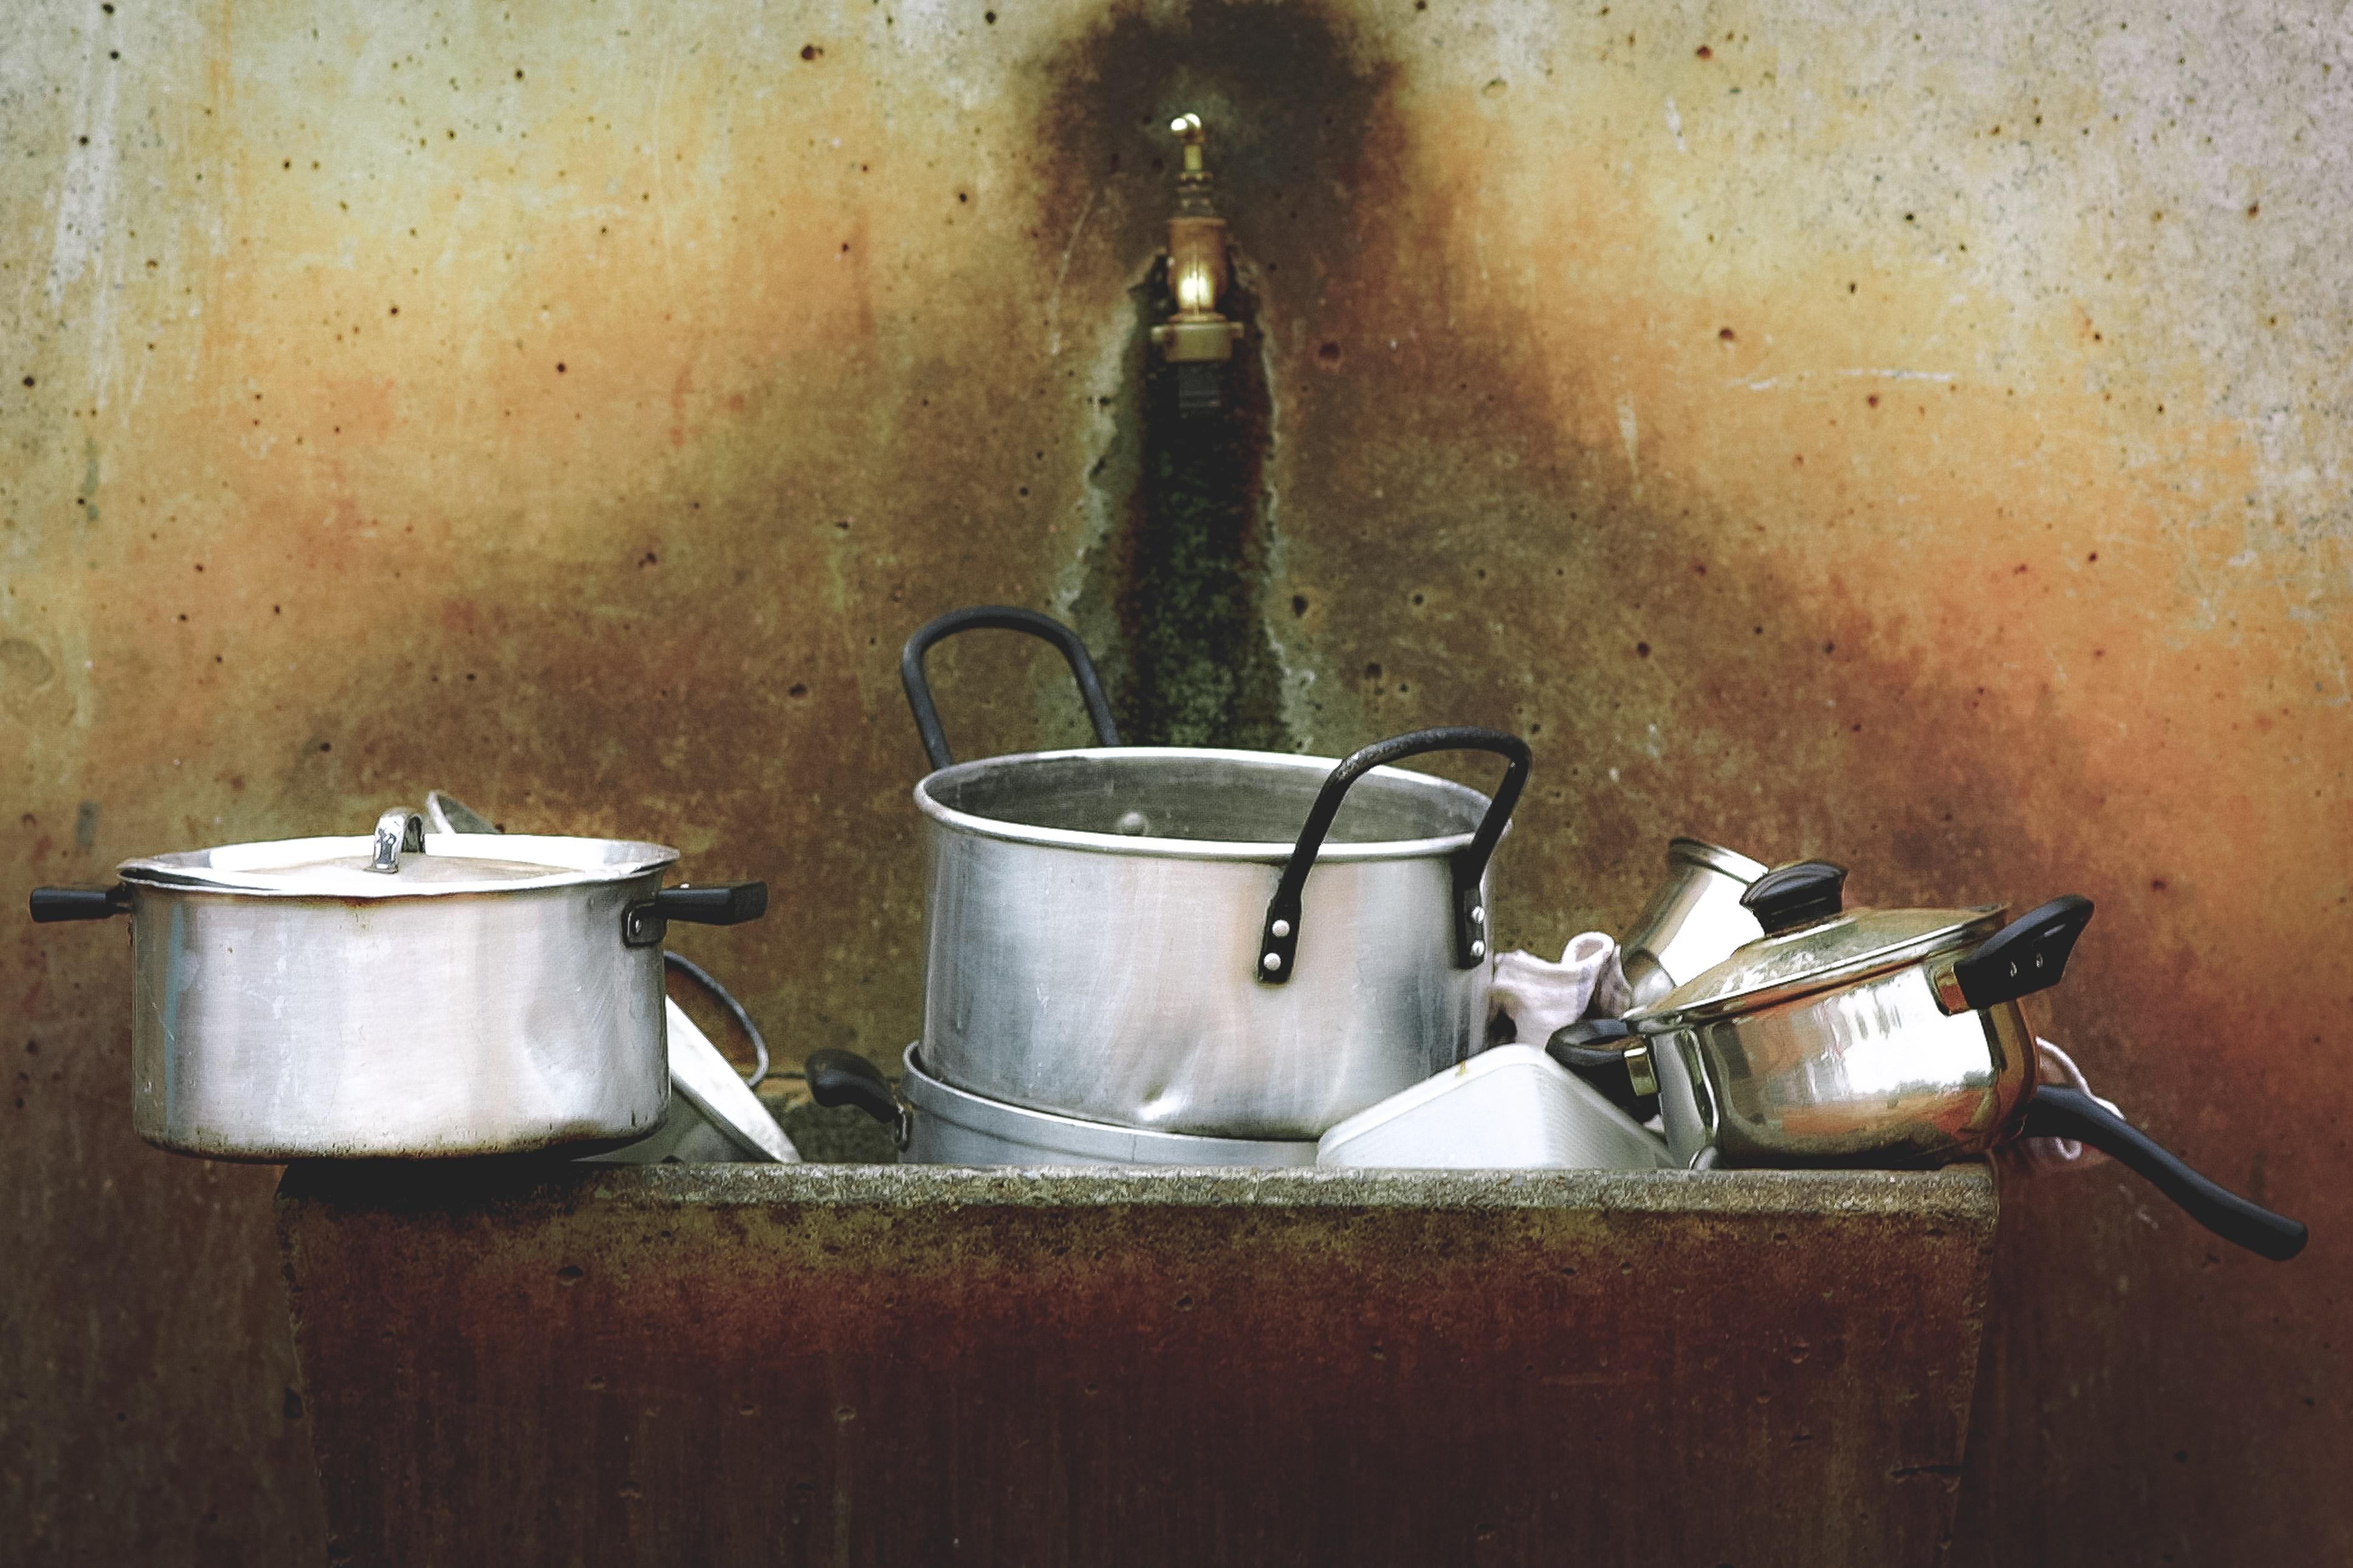 Silver pots and dishes in a dirty old sink with a small faucet